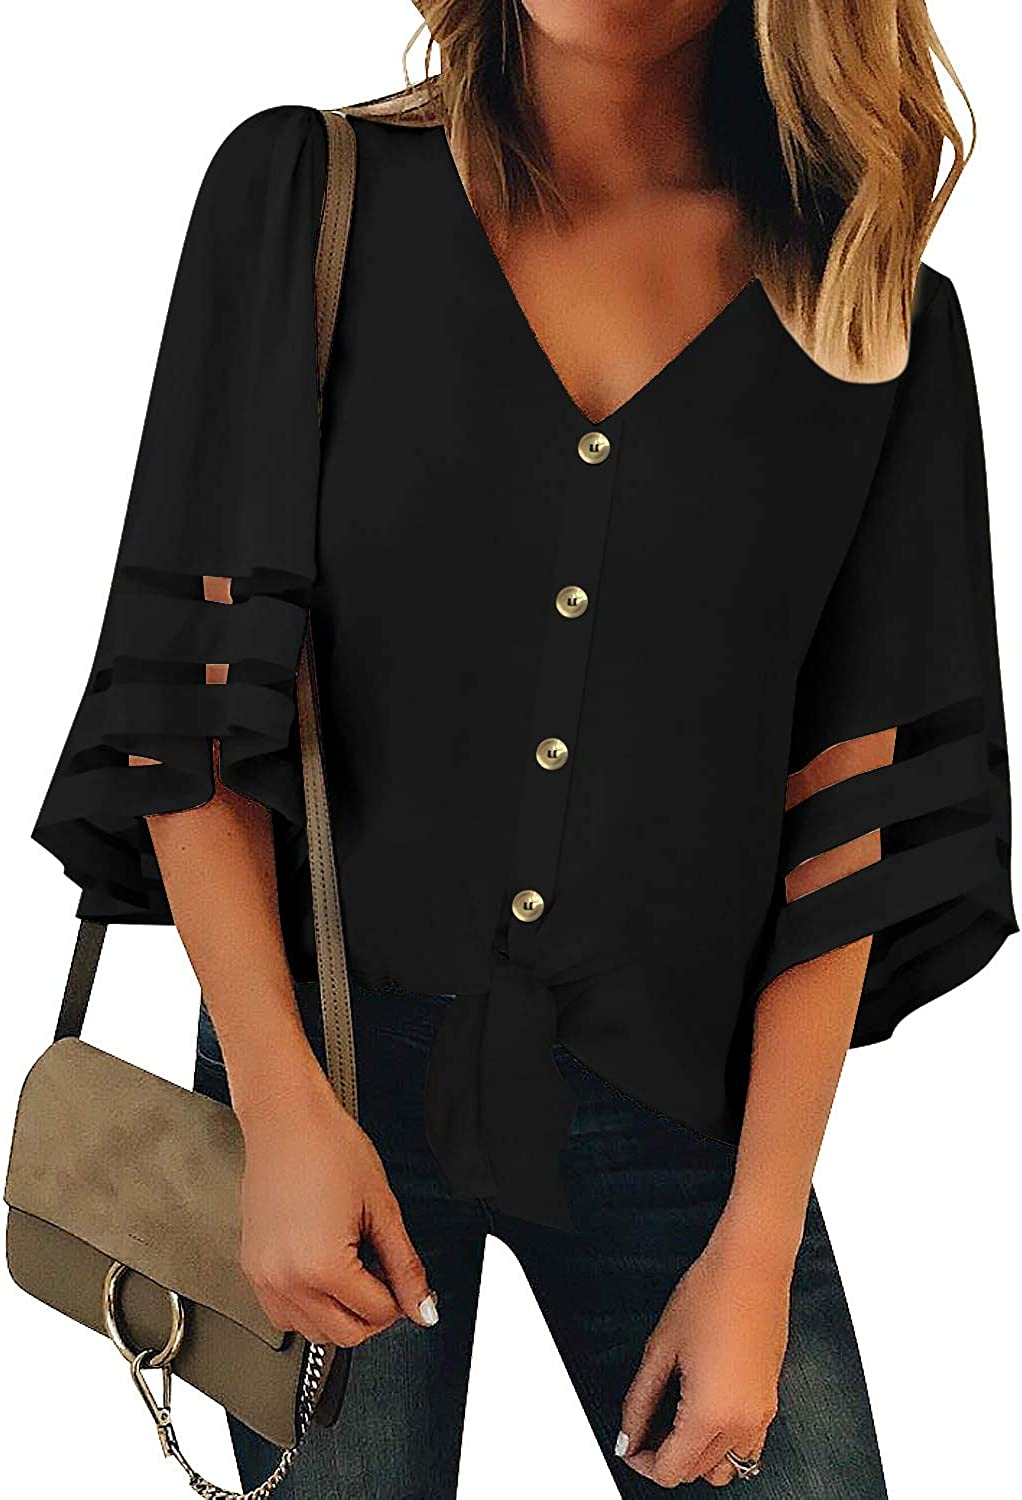 LookbookStore Womens Button Down Tie Knot Mesh Blouse 3/4 Bell Sleeve Loose Tops